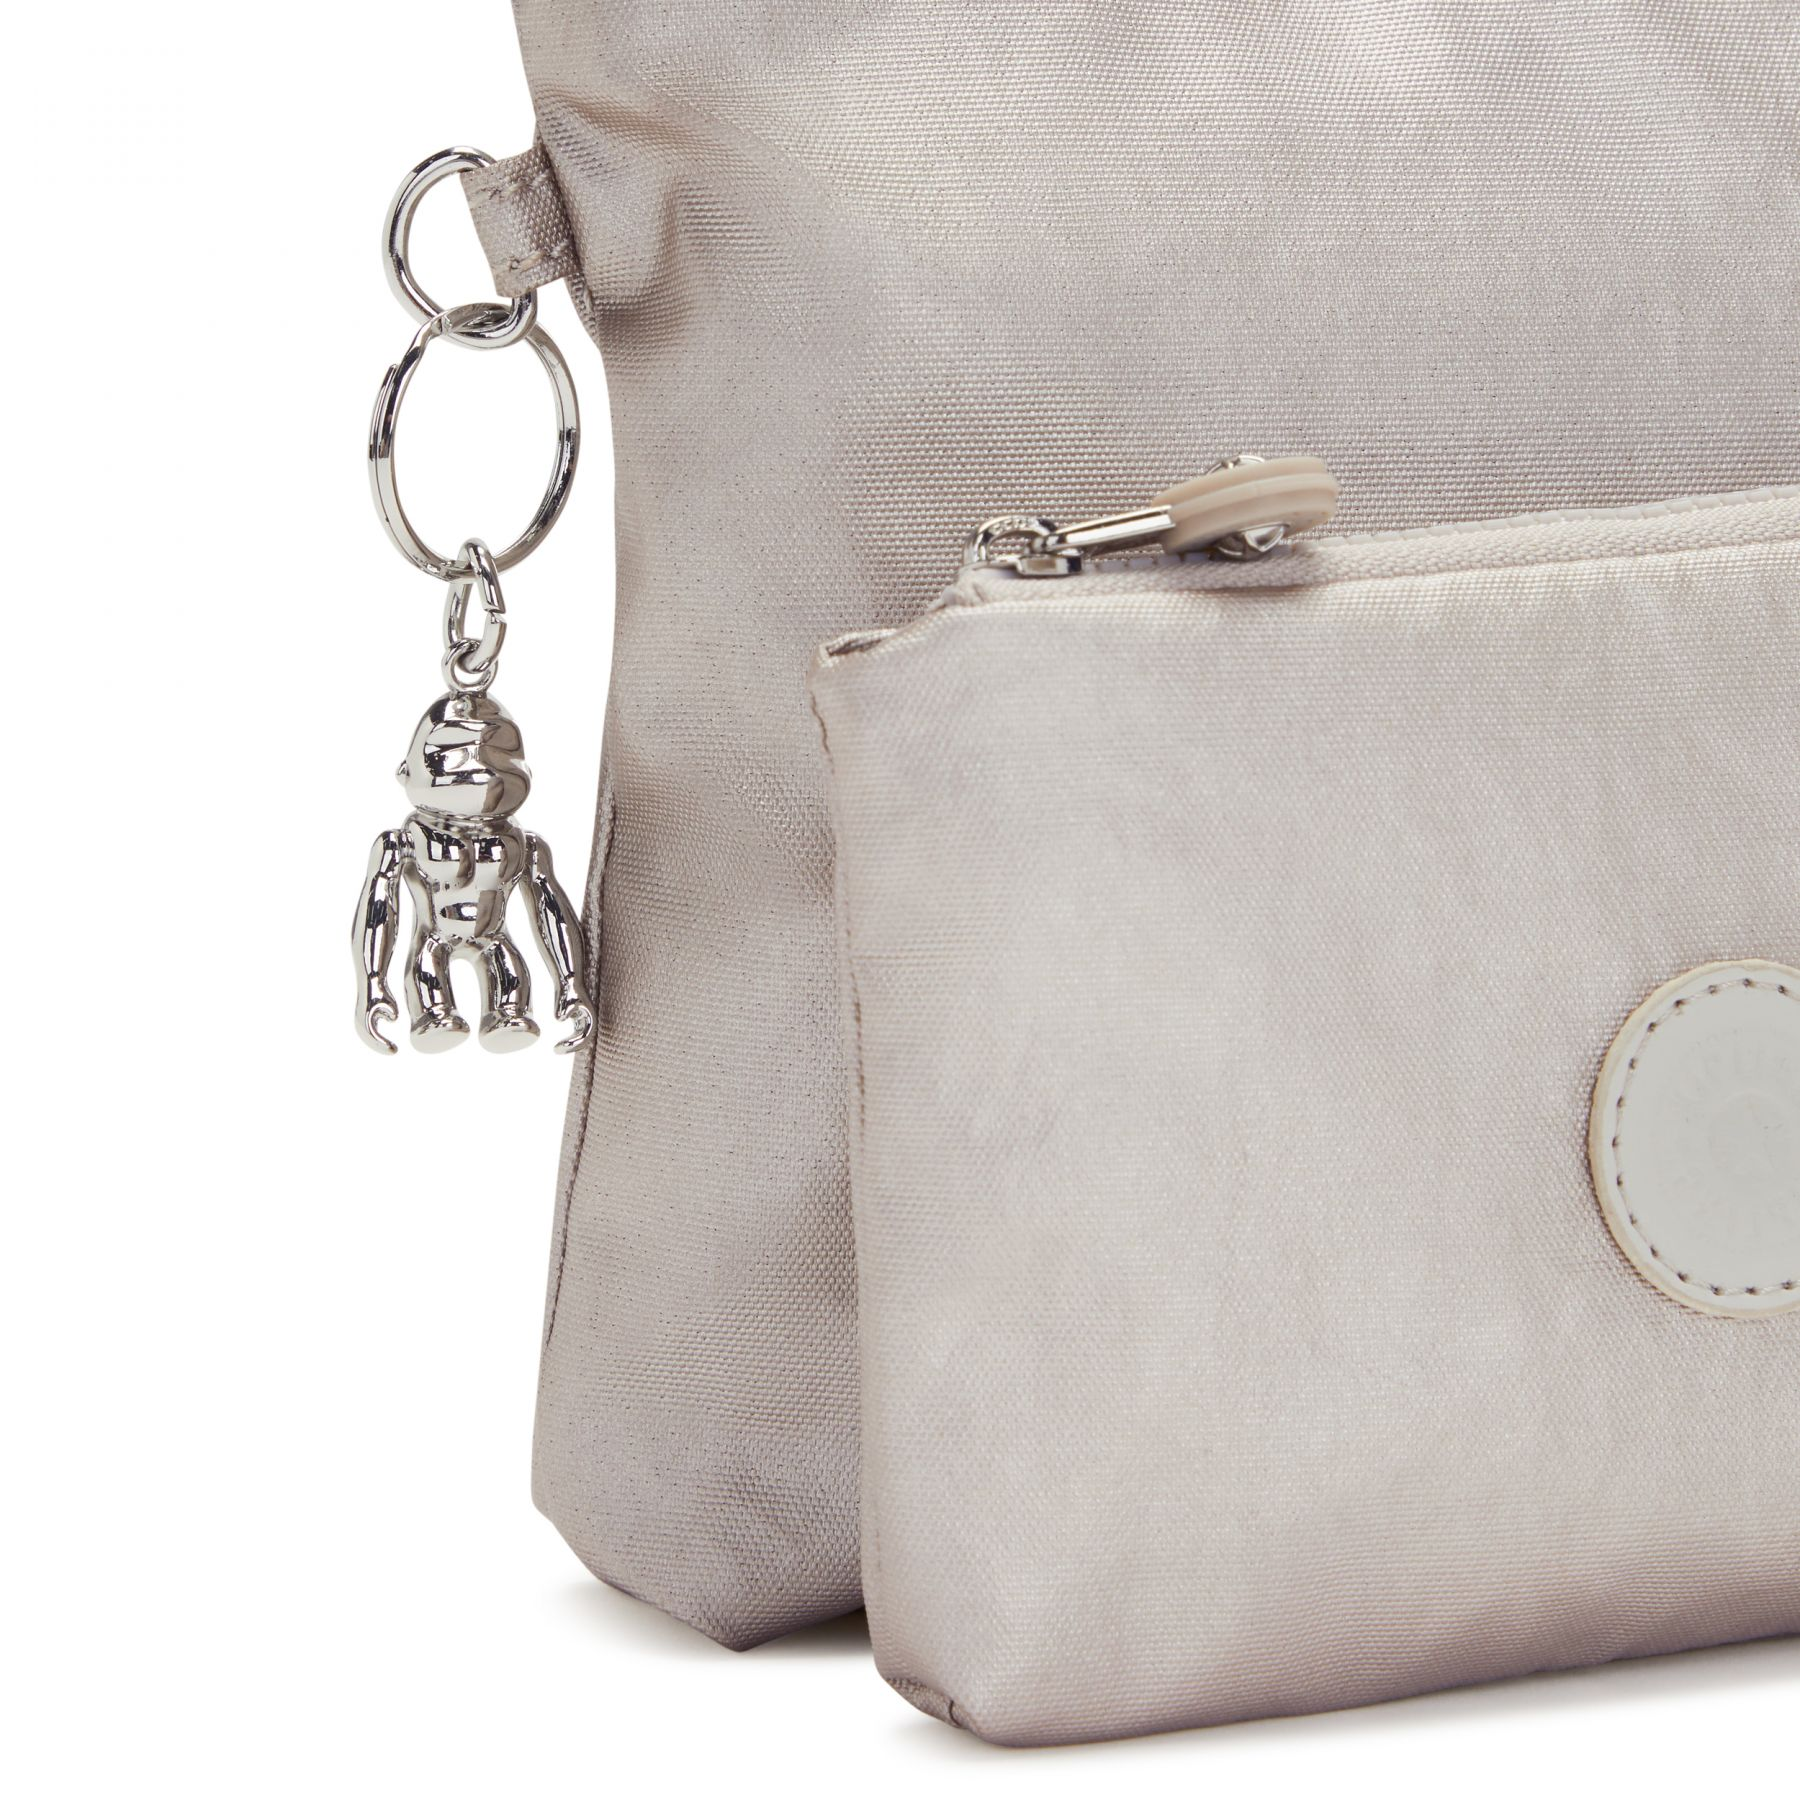 ATLEZ DUO ACCESSORIES by Kipling - view 5